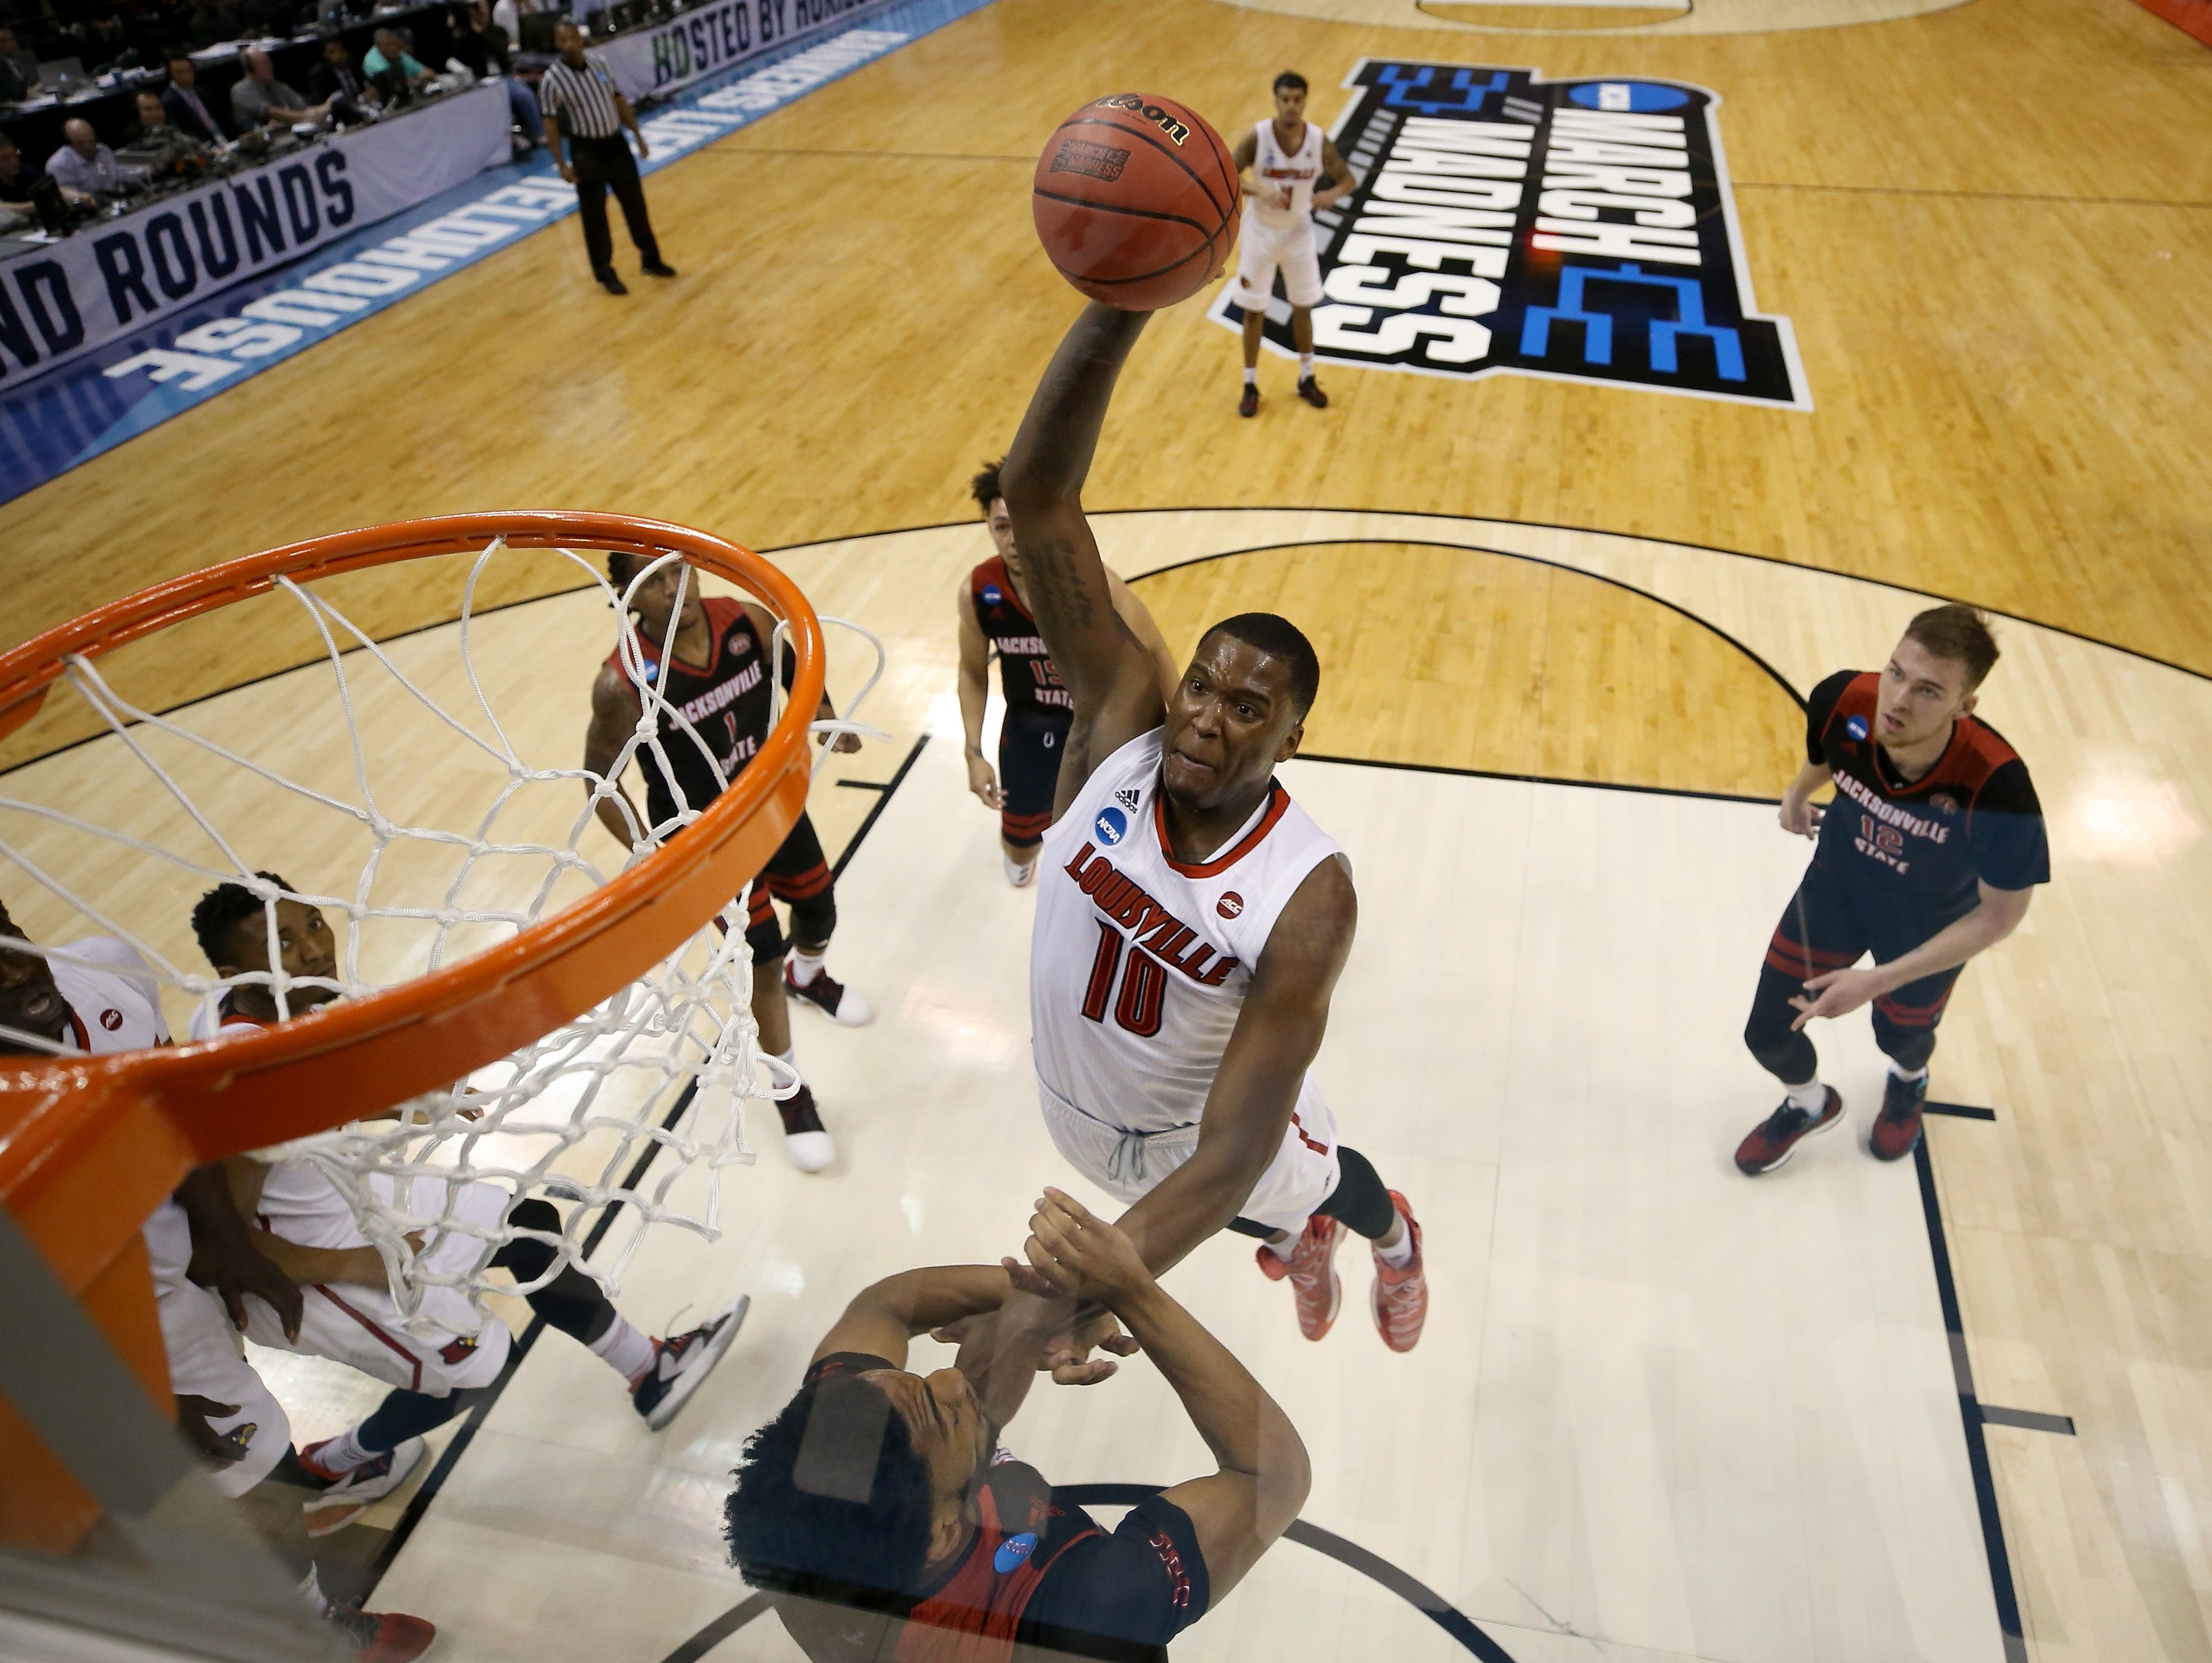 Louisville's Jaylen Johnson shoots the ball against Jacksonville State during the first round of the NCAA tournament at Bankers Life Fieldhouse on March 17, 2017.